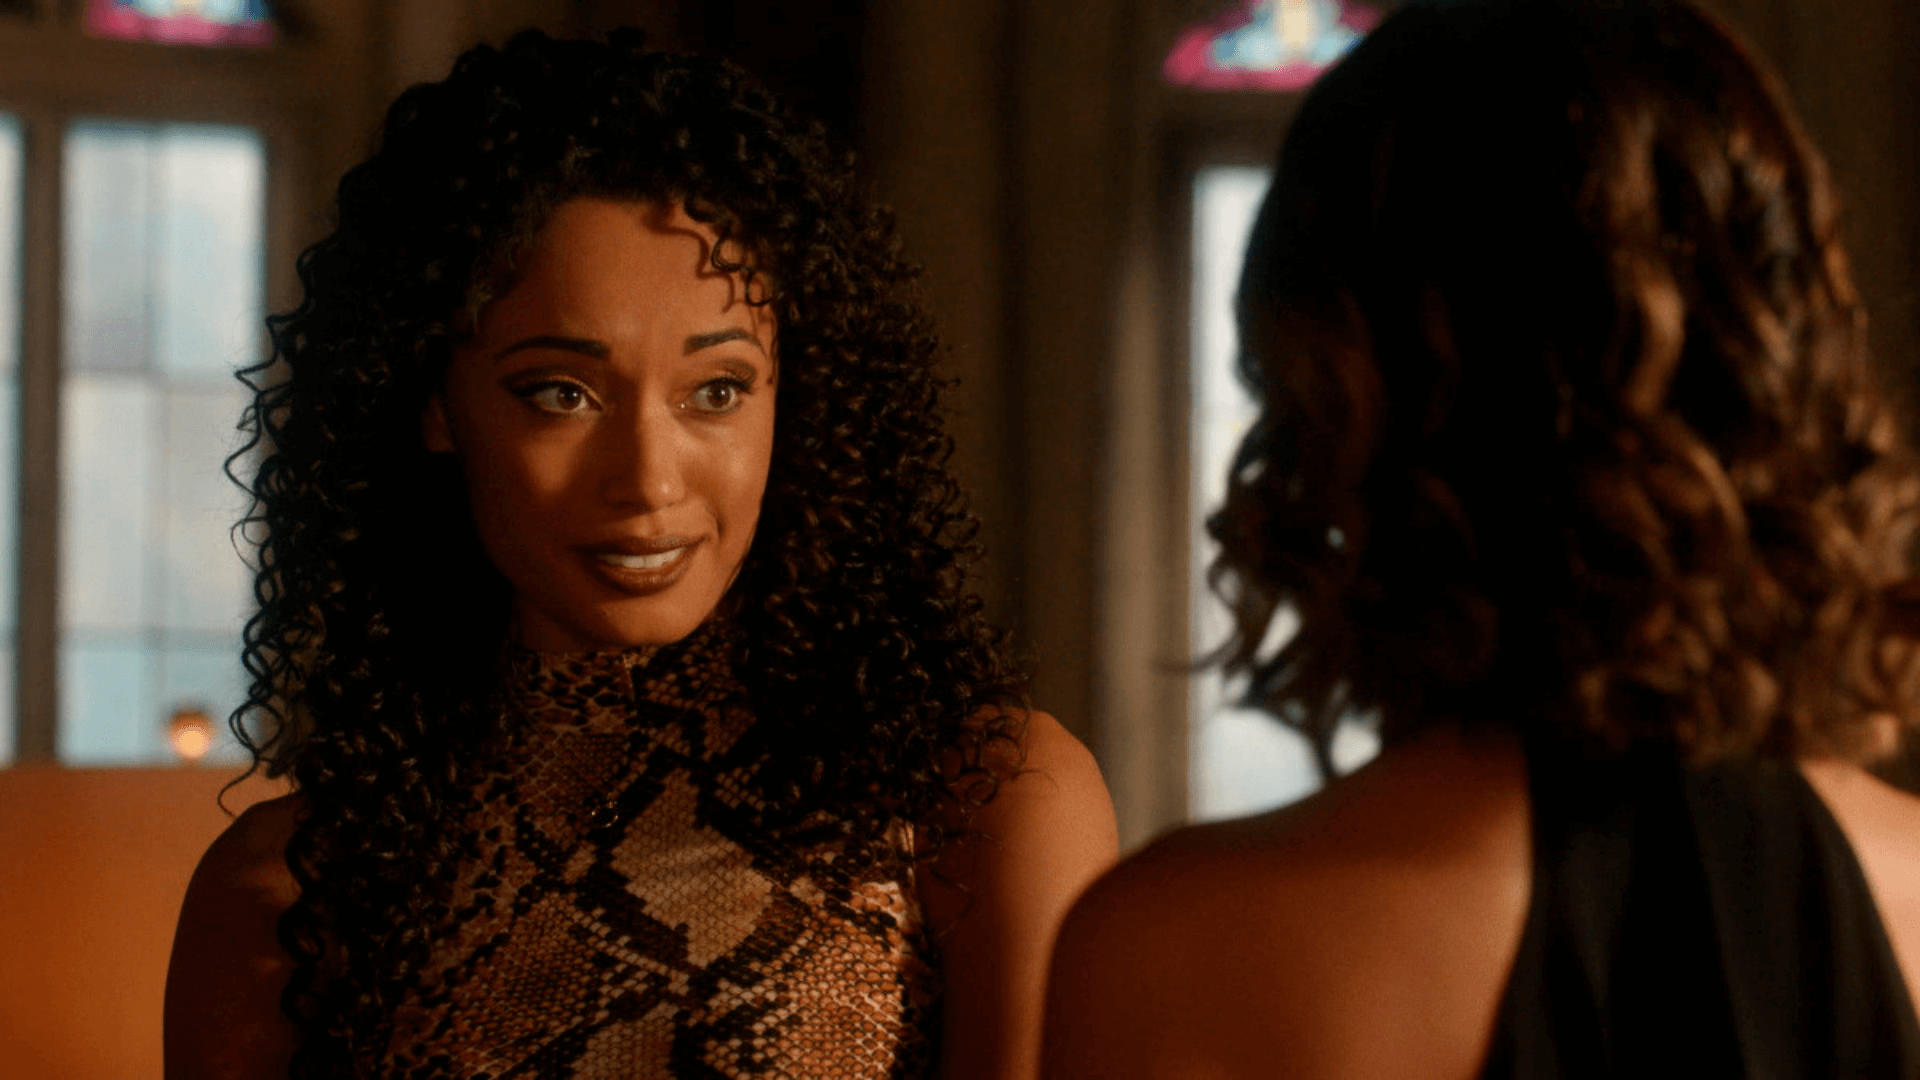 Legends of Tomorrow: Astra Makes A Friend In 'The Satanist's Apprentice'